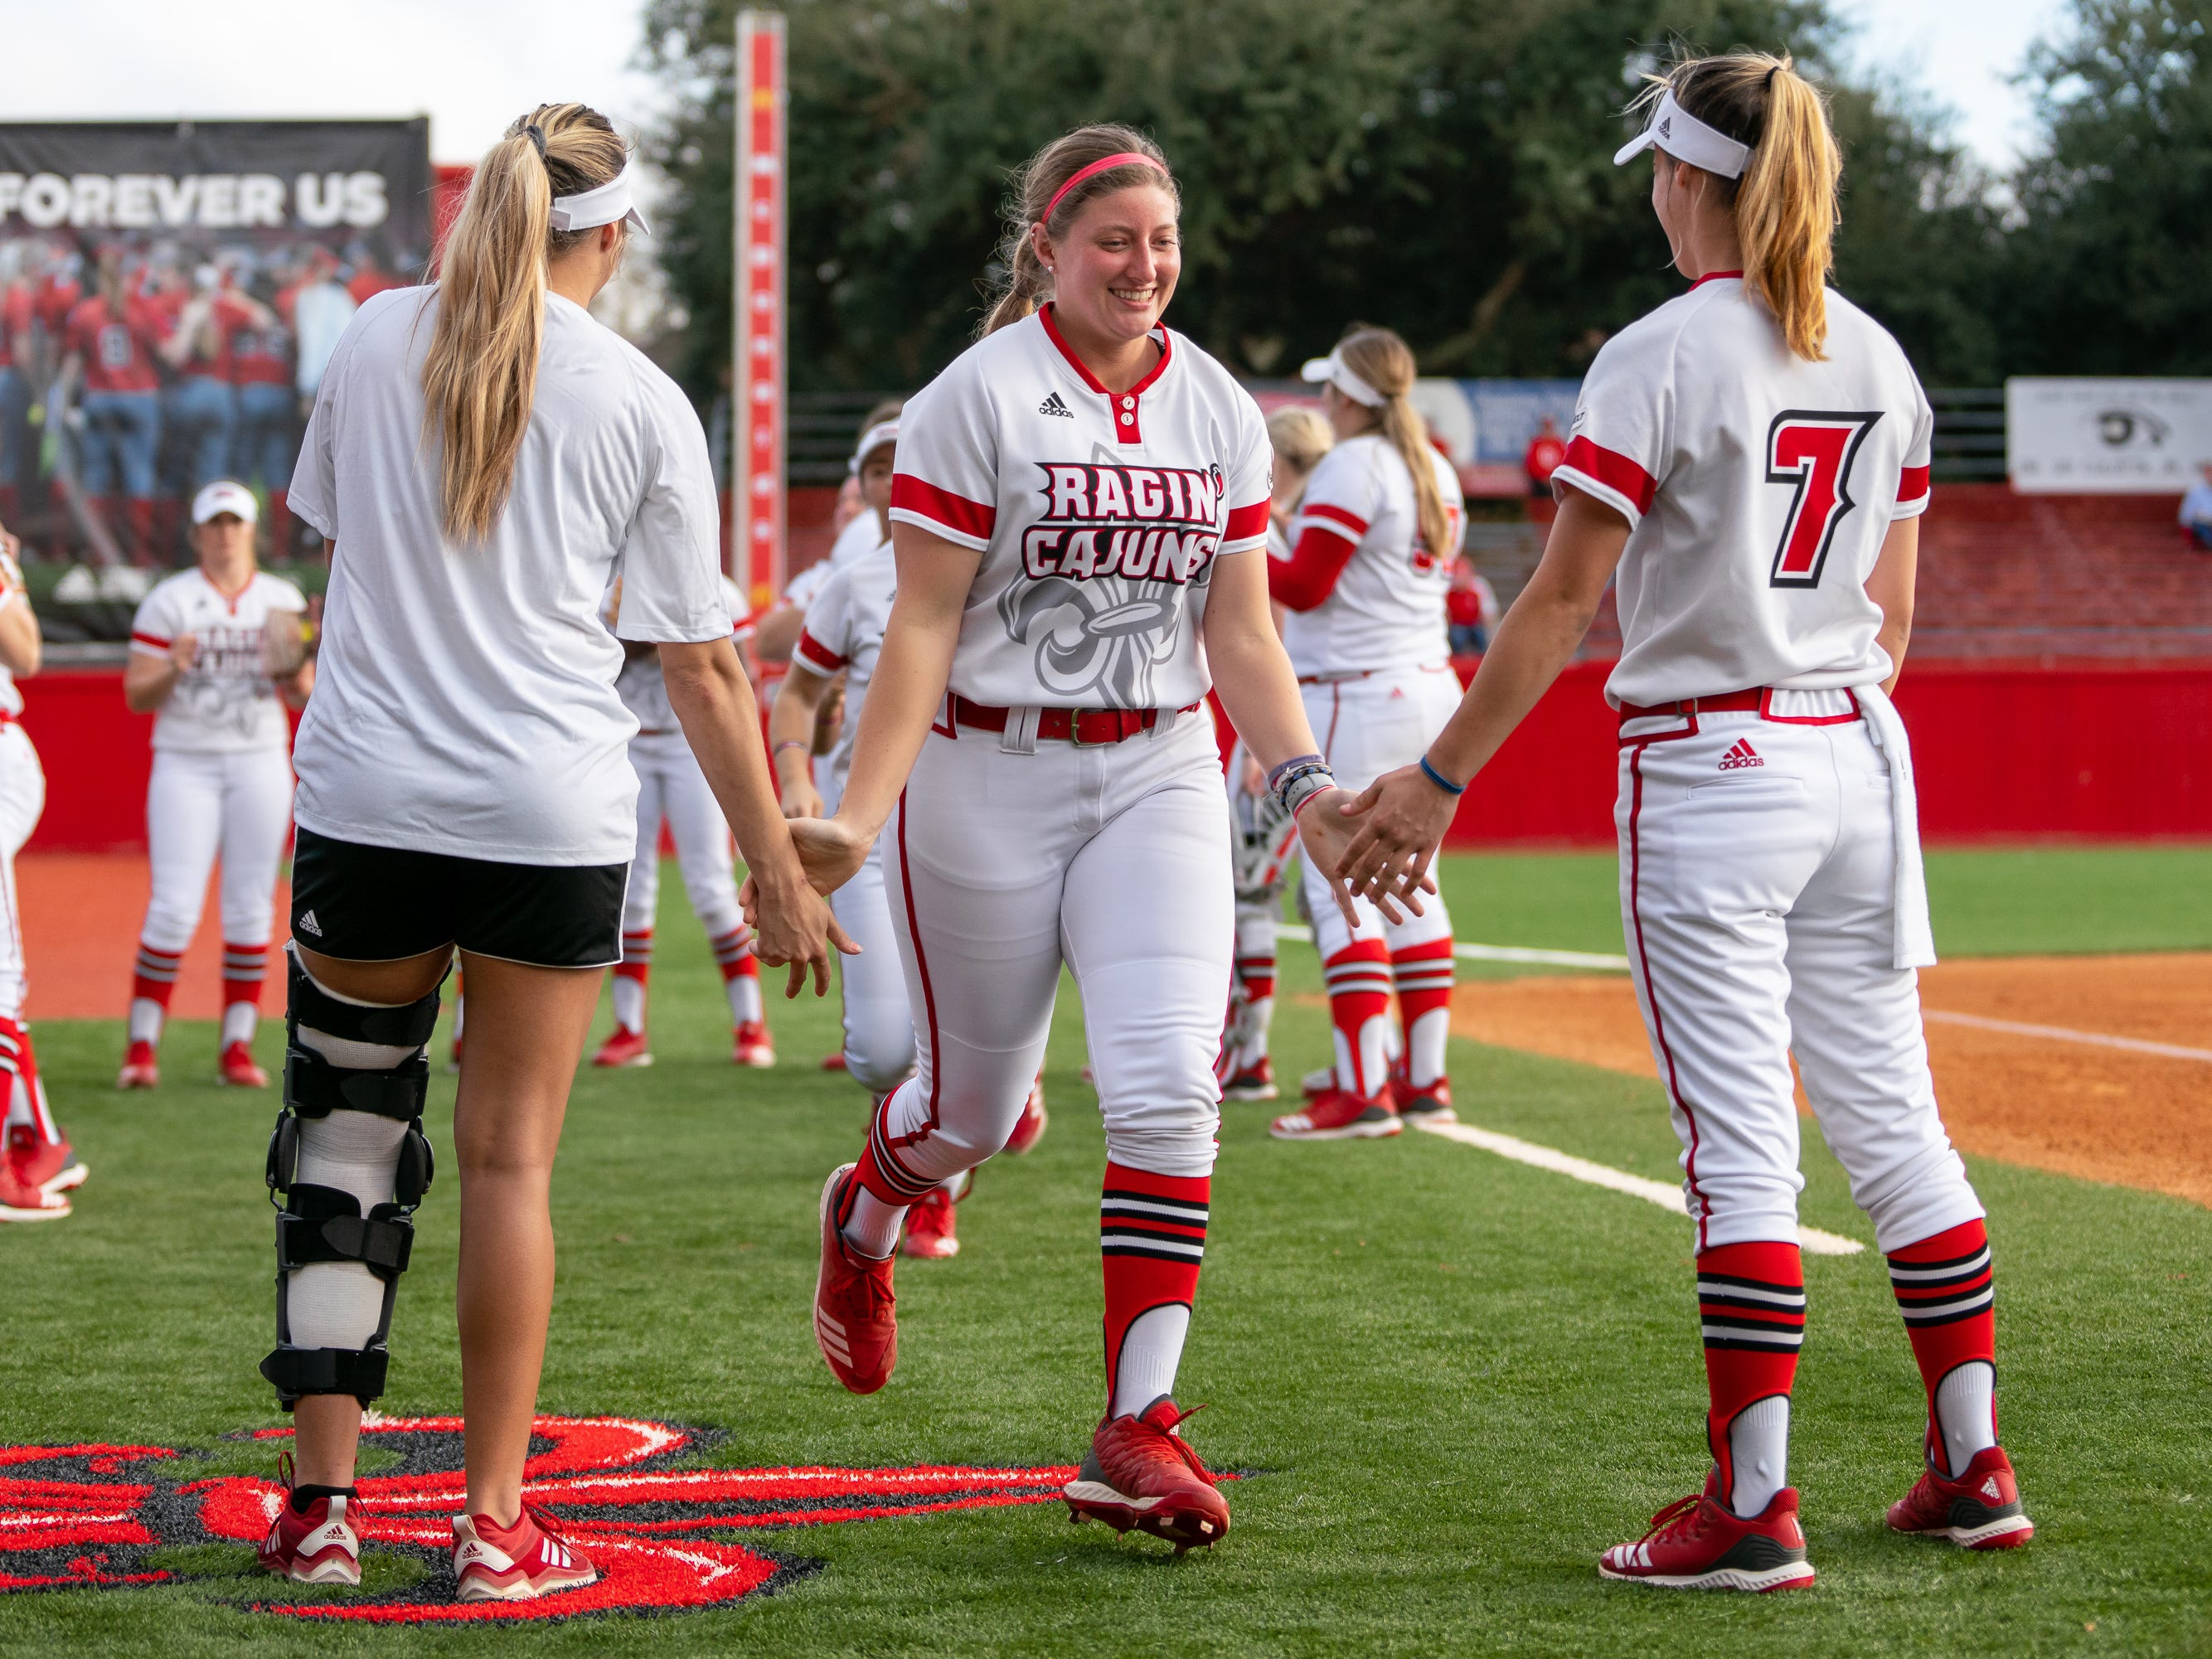 UL's Carrie Boswell runs onto the field before the game as the Ragin' Cajuns play against the California Golden Bears at Lamson Park on February 11, 2019.